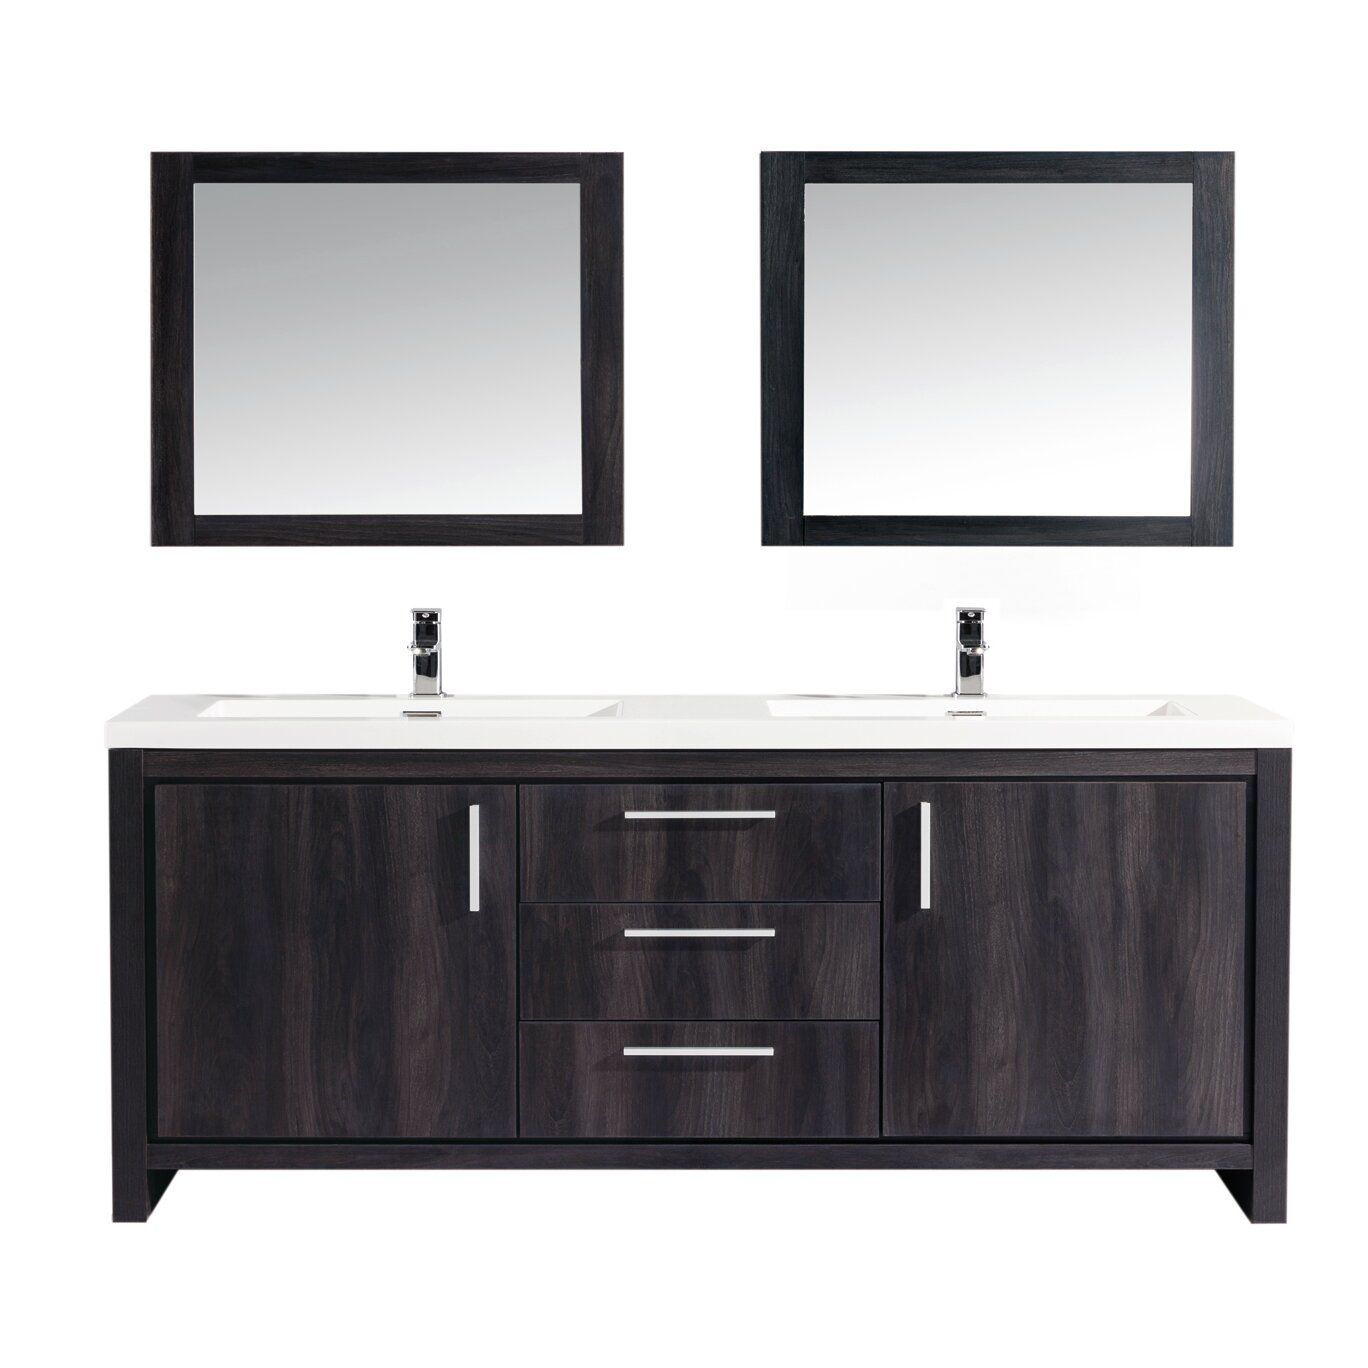 Mtdvanities Miami 59 Double Sink Modern Bathroom Vanity Set With Mirror Wayfair